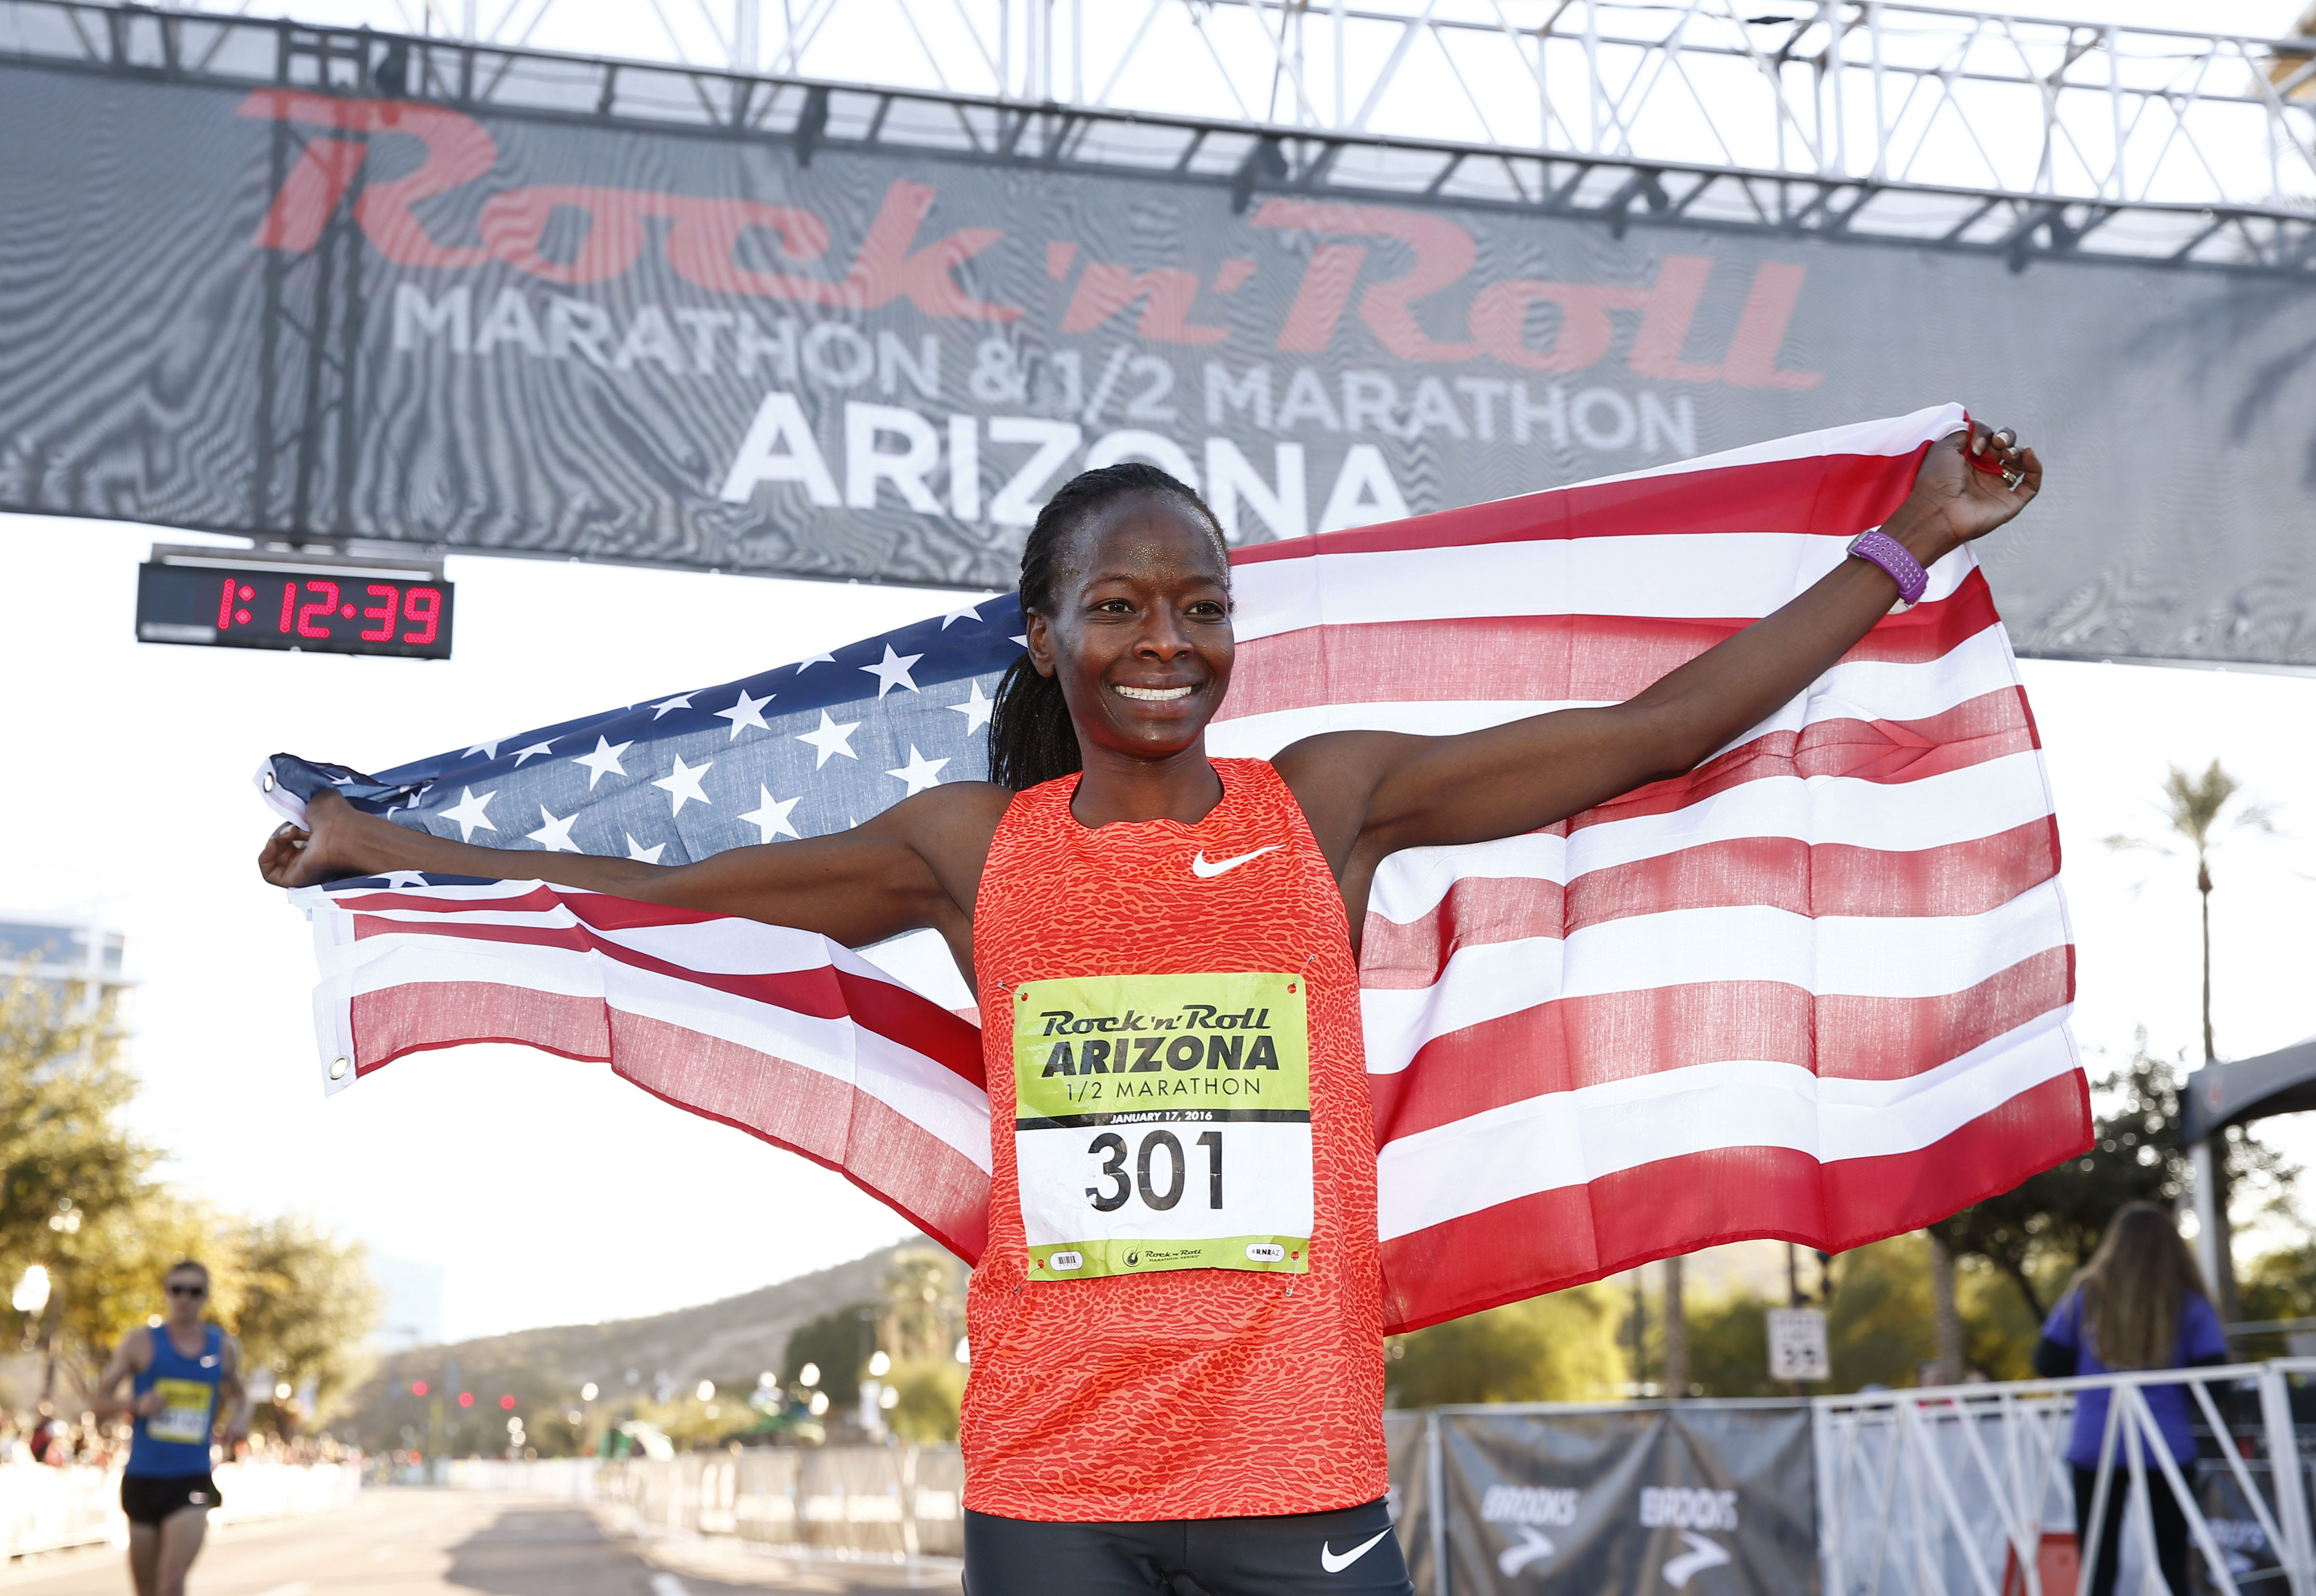 Janet Cherobon-Bawcom of Flagstaff wins the Rock 'n' Roll Arizona Women's ½ Marathon with a time of 1:11:49 on Jan. 17, 2016, in Tempe.